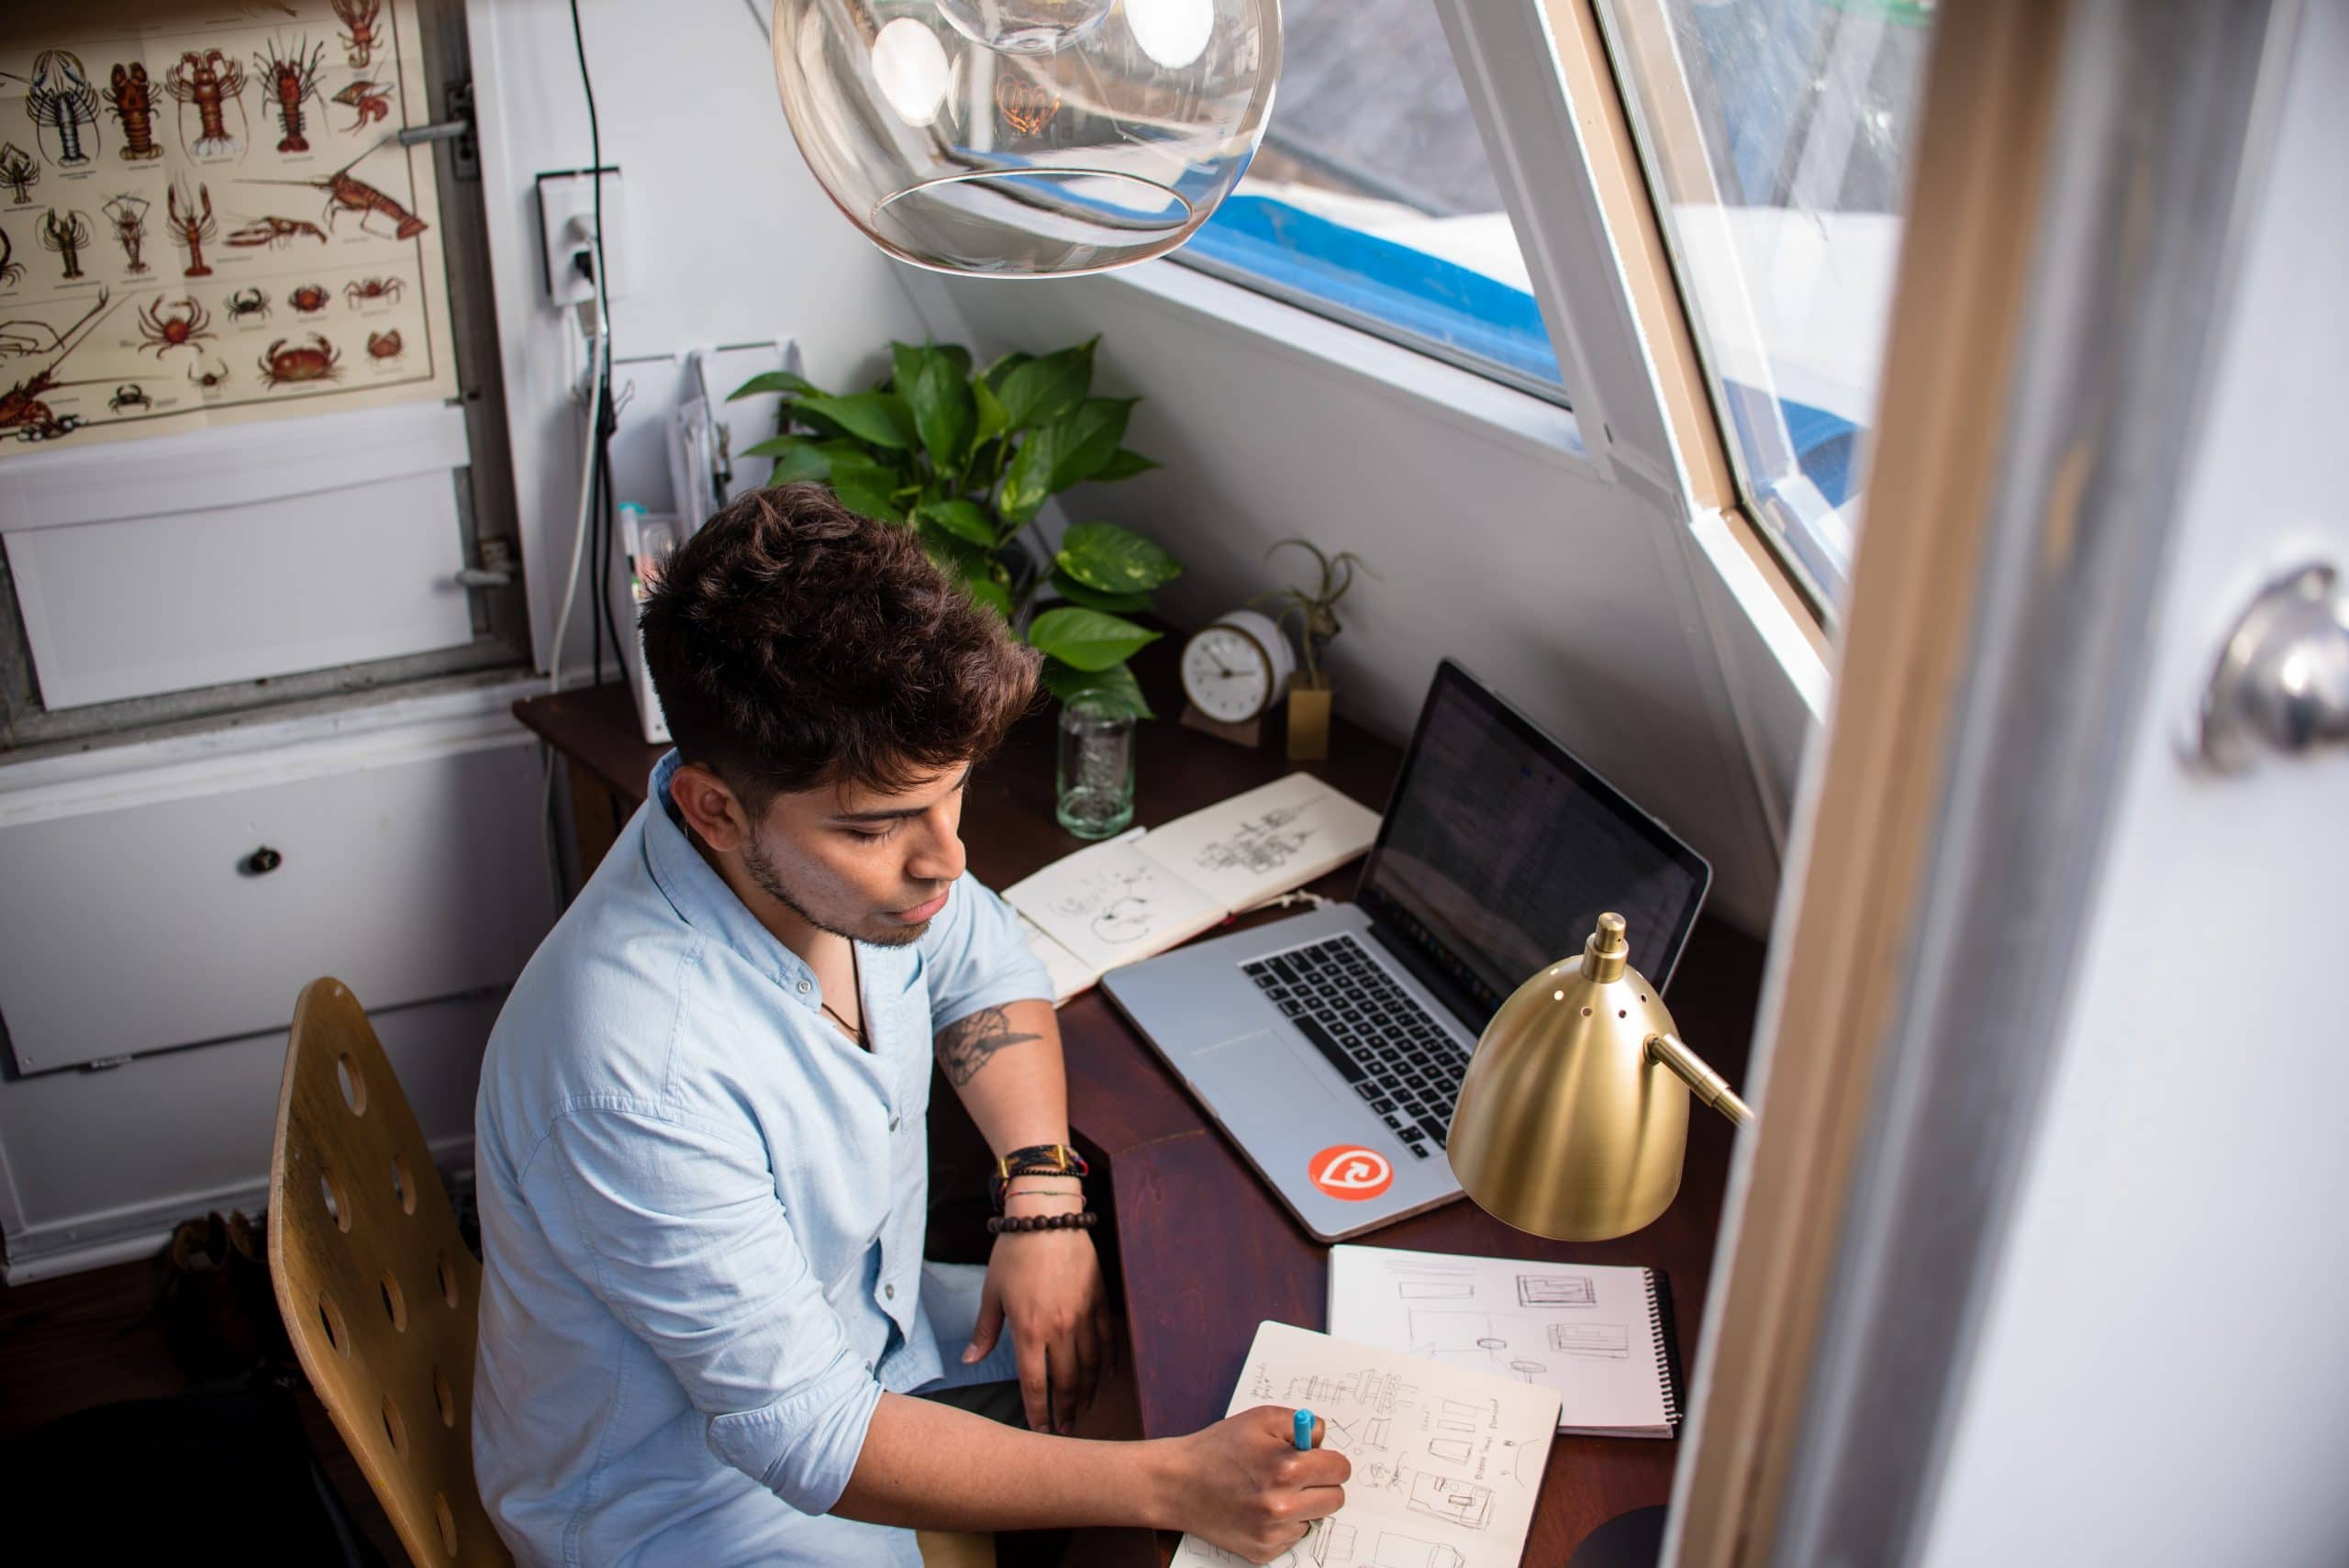 Casual business person working at desk and computer